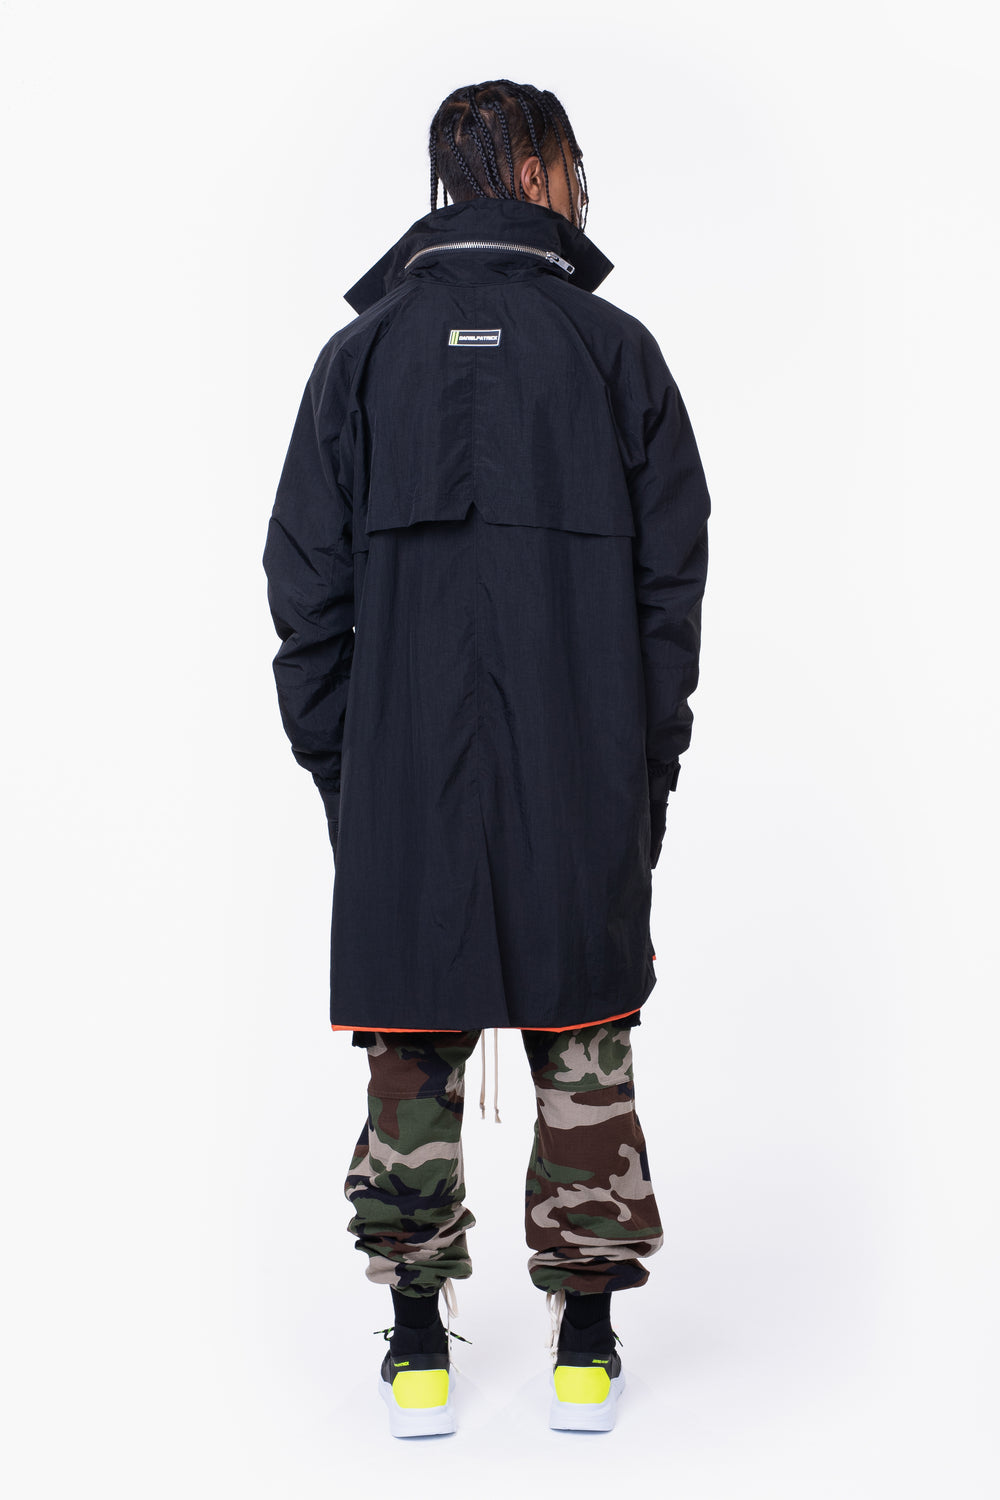 M93 track raincoat / black + smog grey + dust